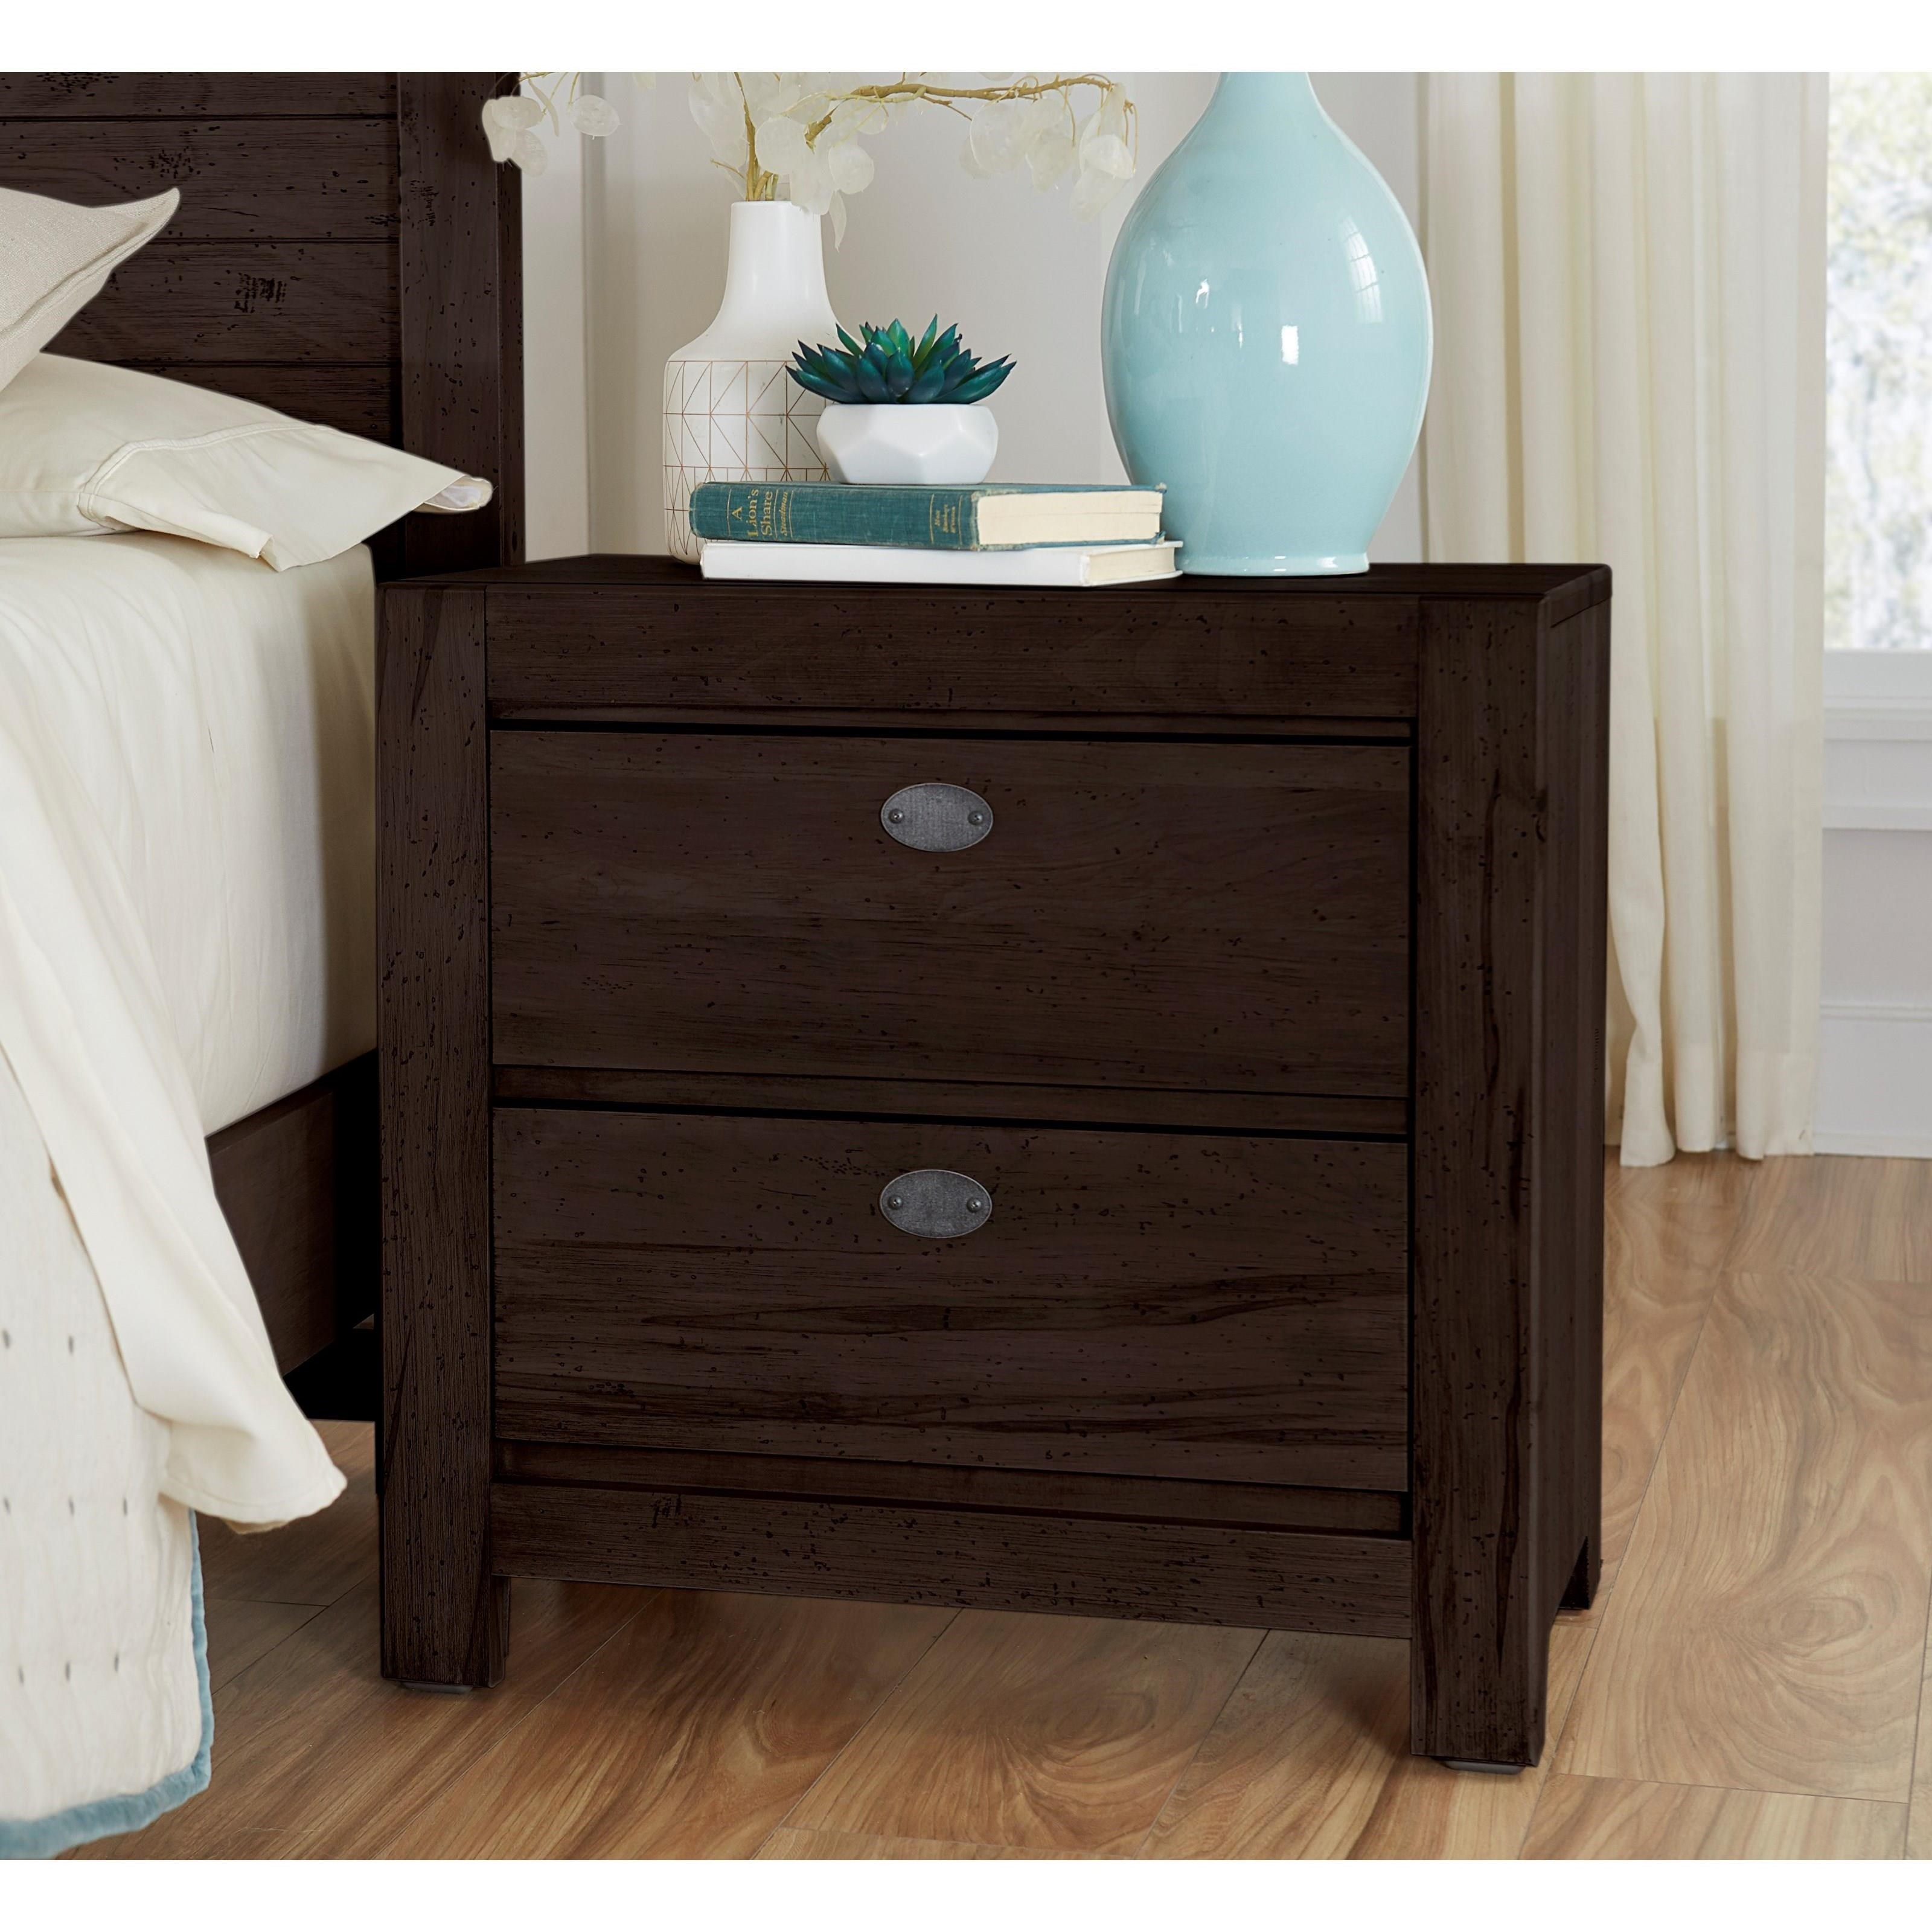 Touche Nightstand by Centennial Solids at Home Collections Furniture